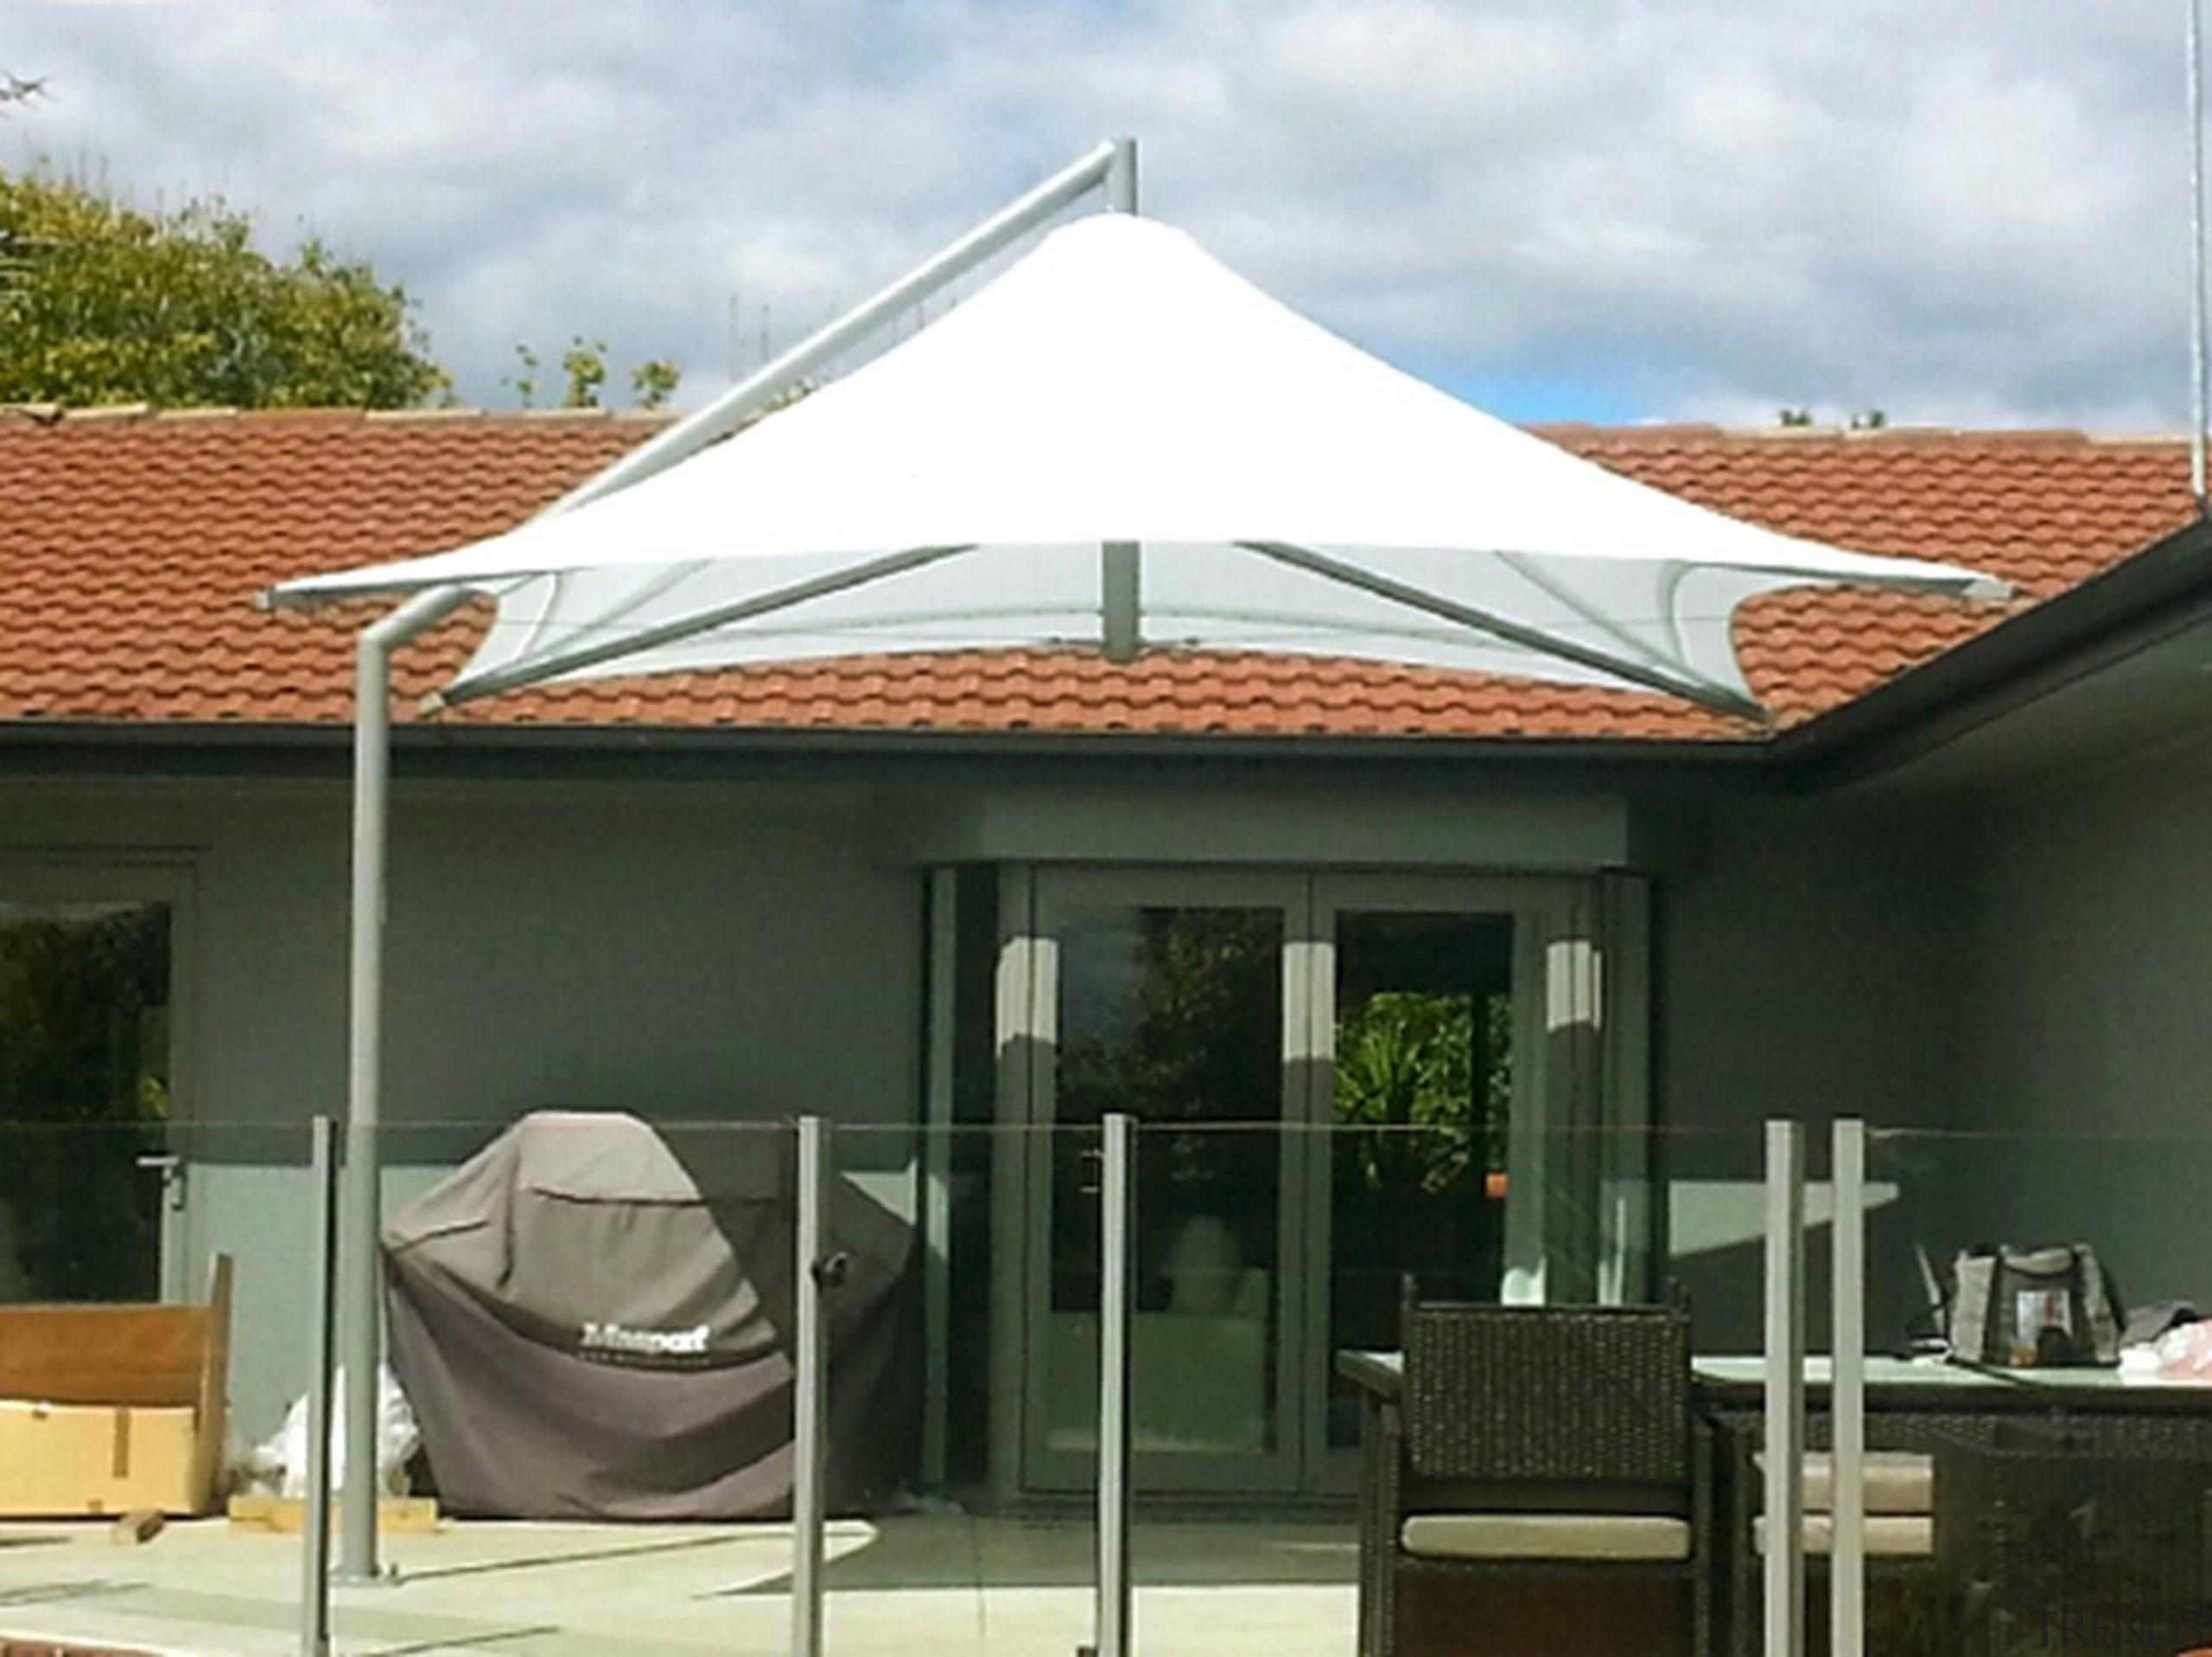 Summit Parasols - canopy | daylighting | outdoor canopy, daylighting, outdoor structure, real estate, roof, shade, black, white